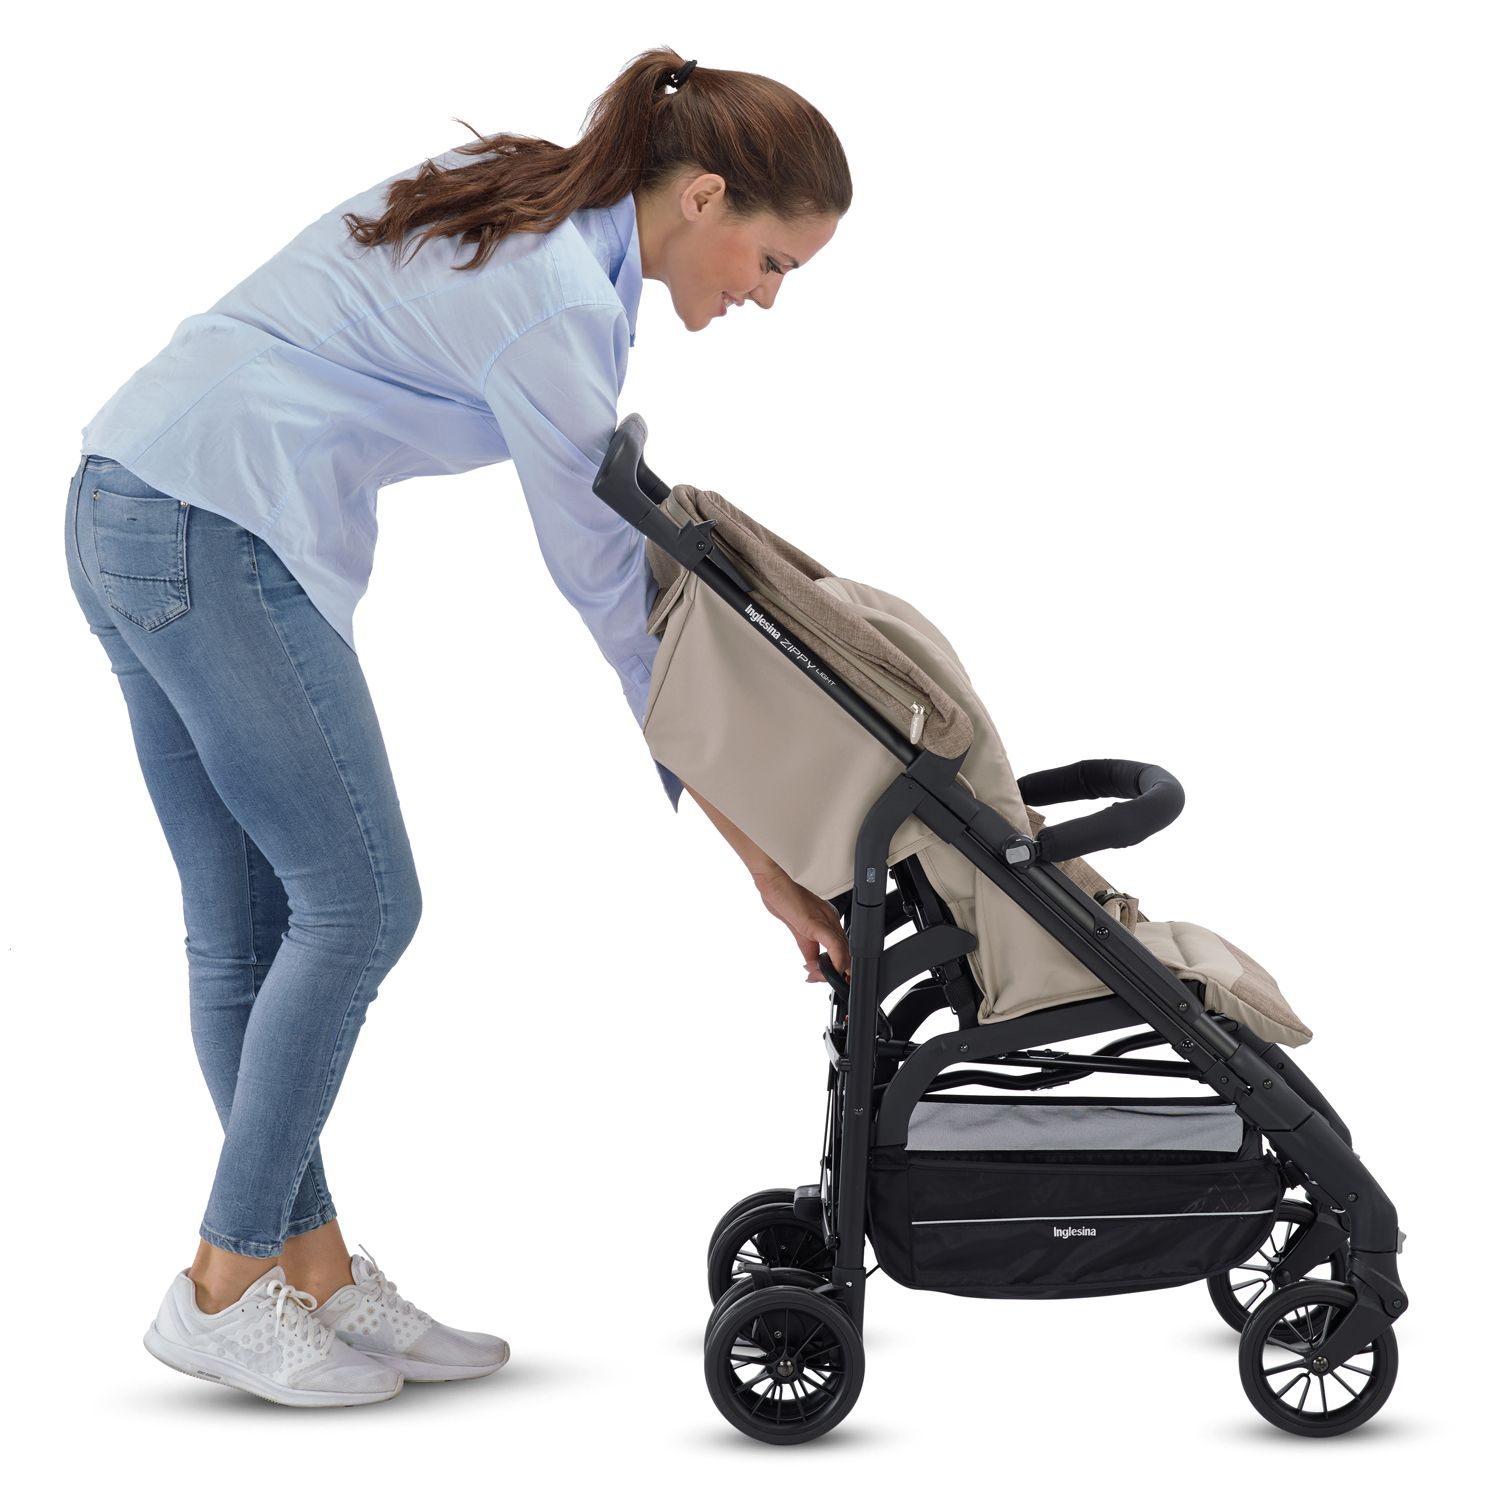 Zippy Light Closing 1/3 Stroller, Baby strollers, Children